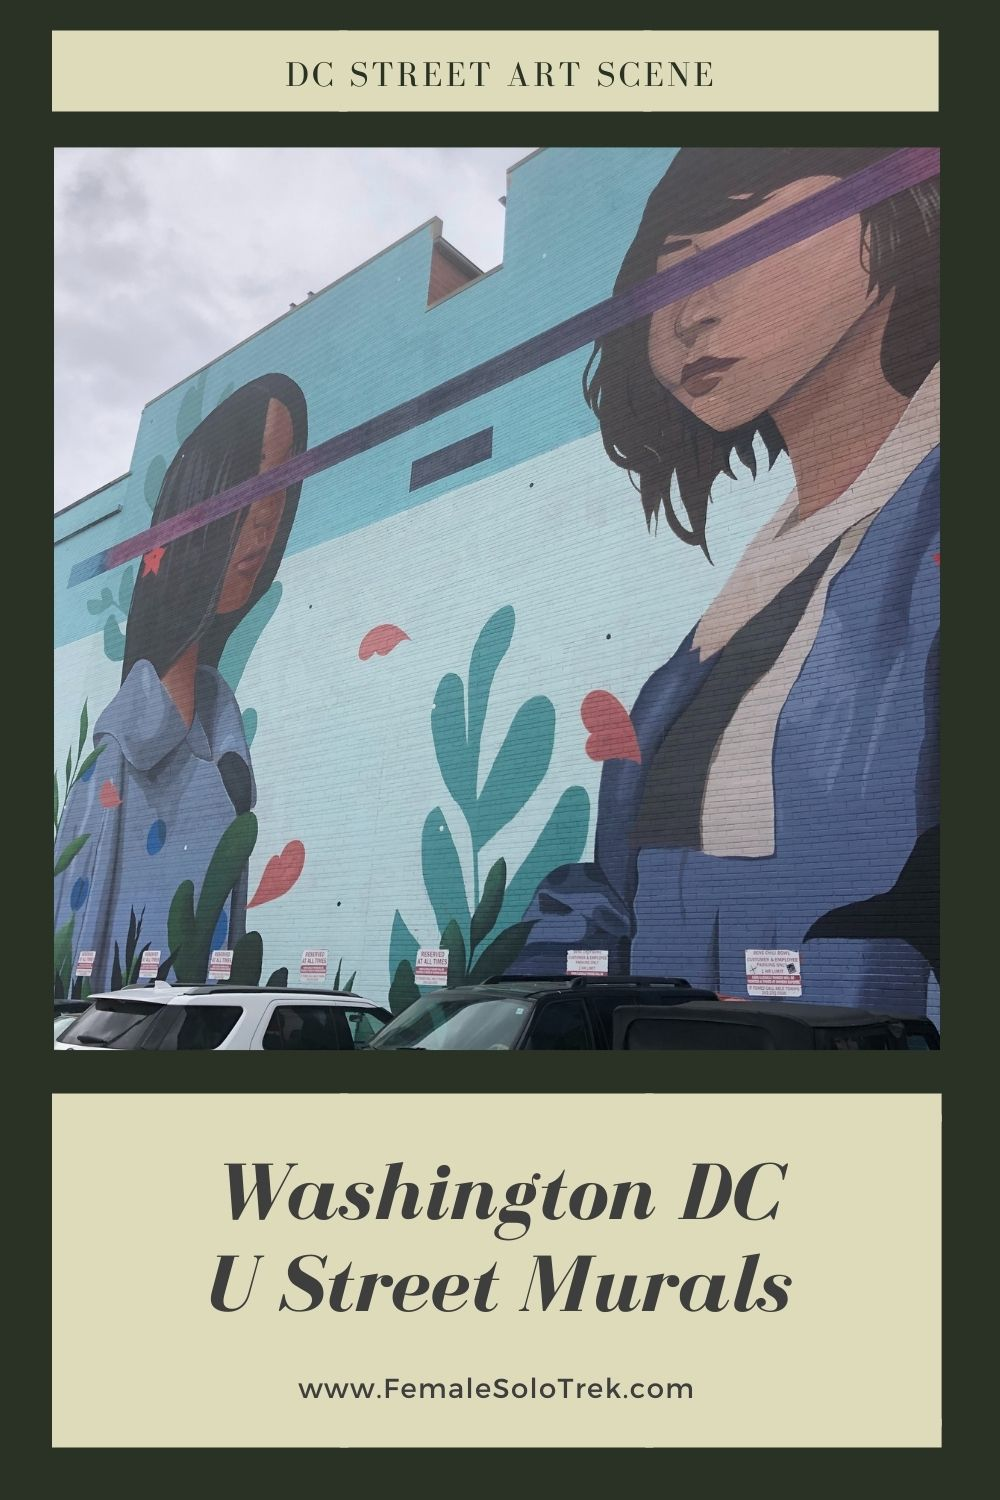 U Street is one of the most famous neighborhoods to see DC Street Art.